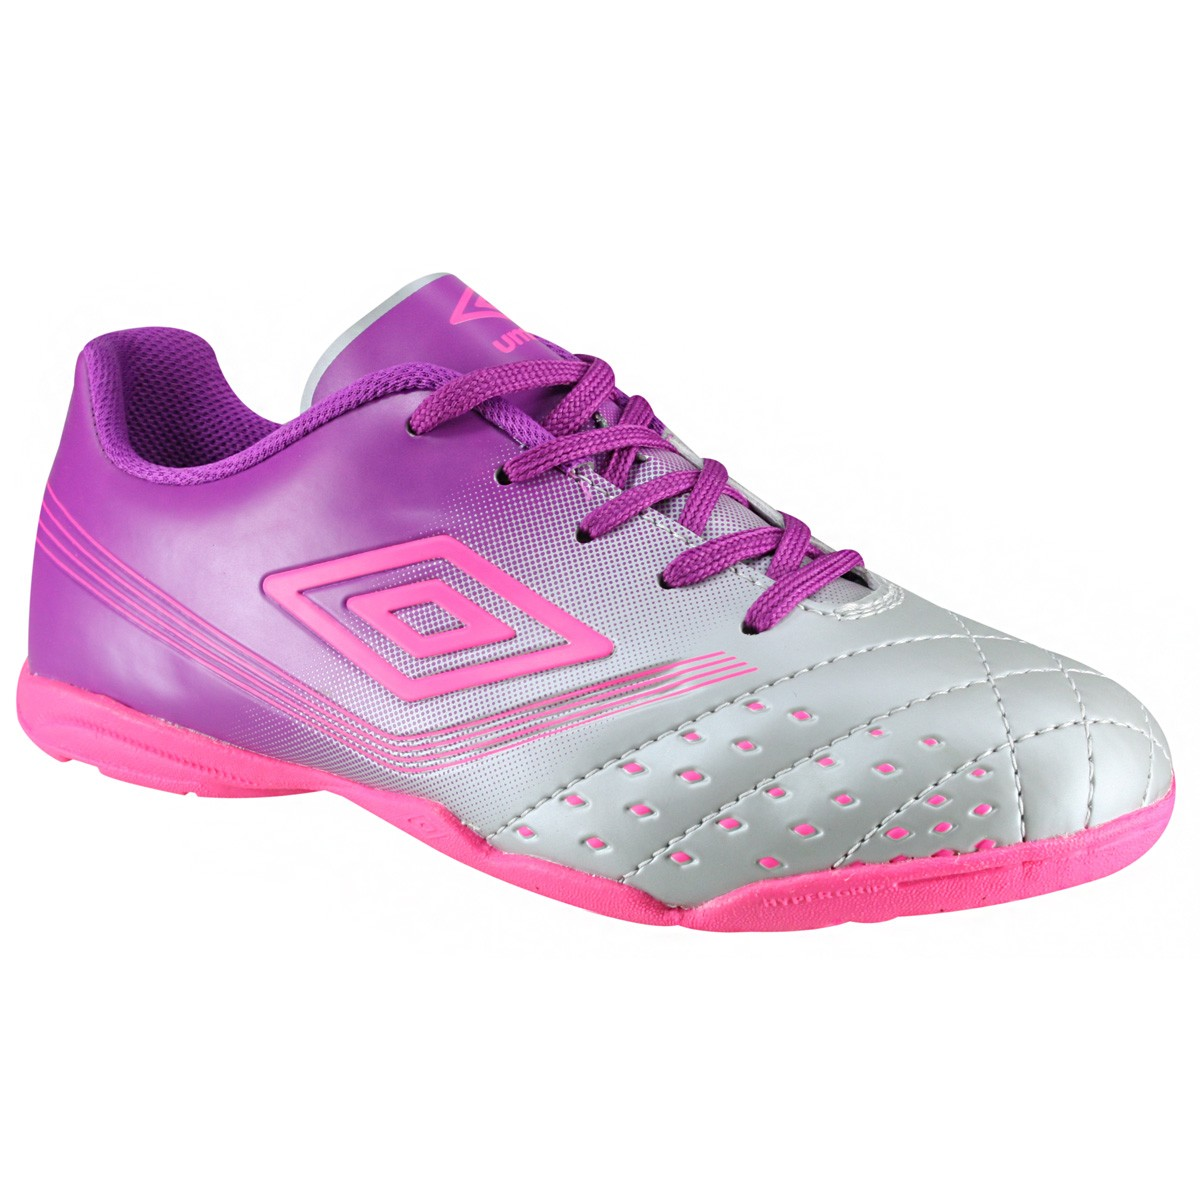 Indoor Fifty Feminino Umbro OF72063-000 - Cinza Roxo Pink - Botas ... f85c021e54fa7